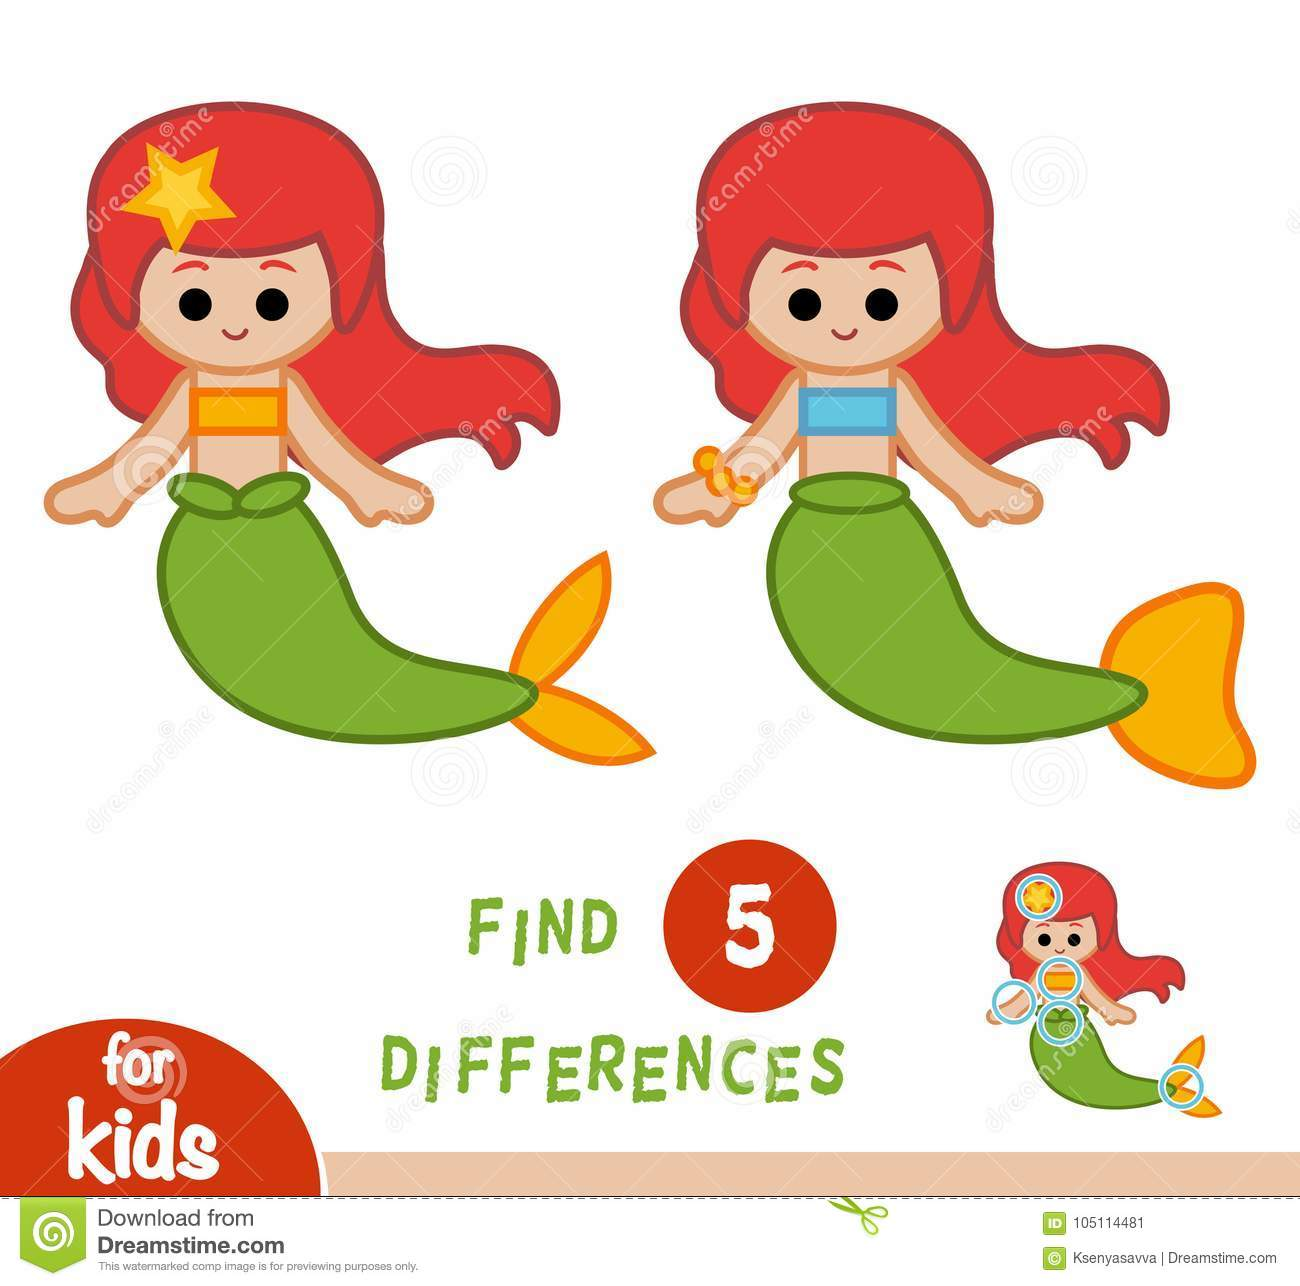 photo about Find the Differences Printable identified as Identify Variations, Education and learning Video game, Mermaid Inventory Vector